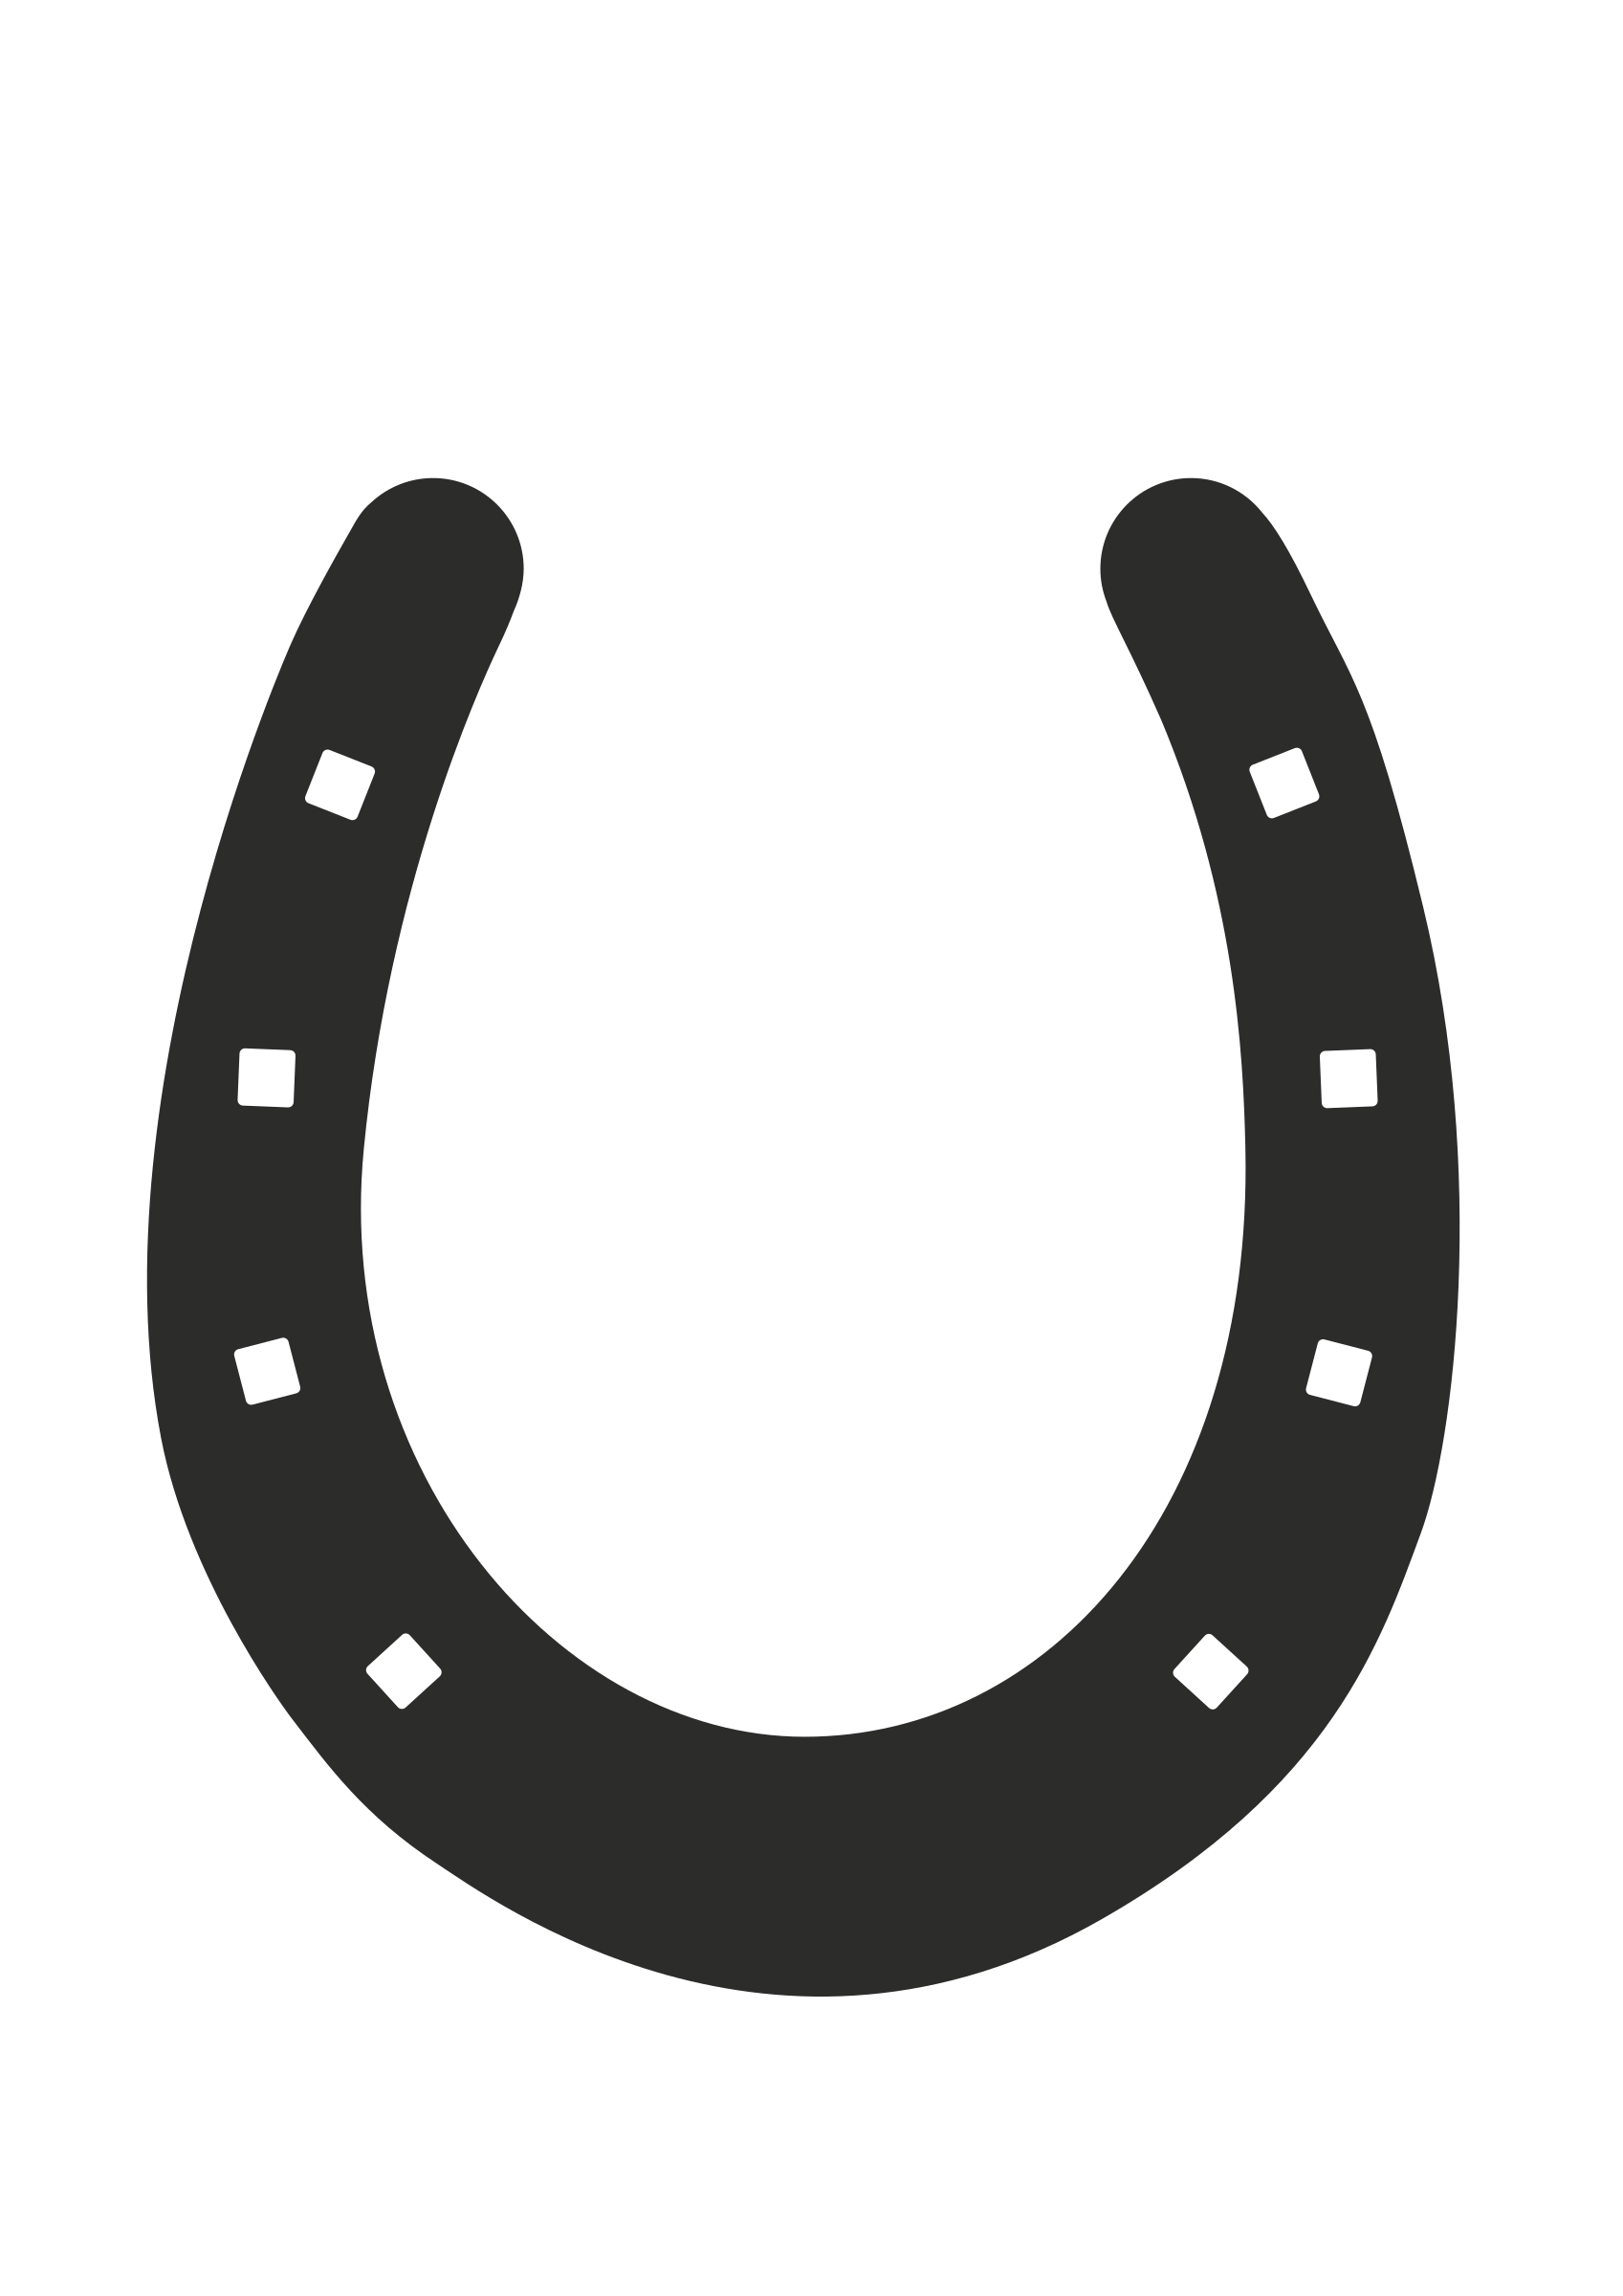 horse shoe black personals Shop our collection of original antique & vintage pins and brooches from all periods a vast selection of art deco, edwardian, victorian, georgian, retro,.